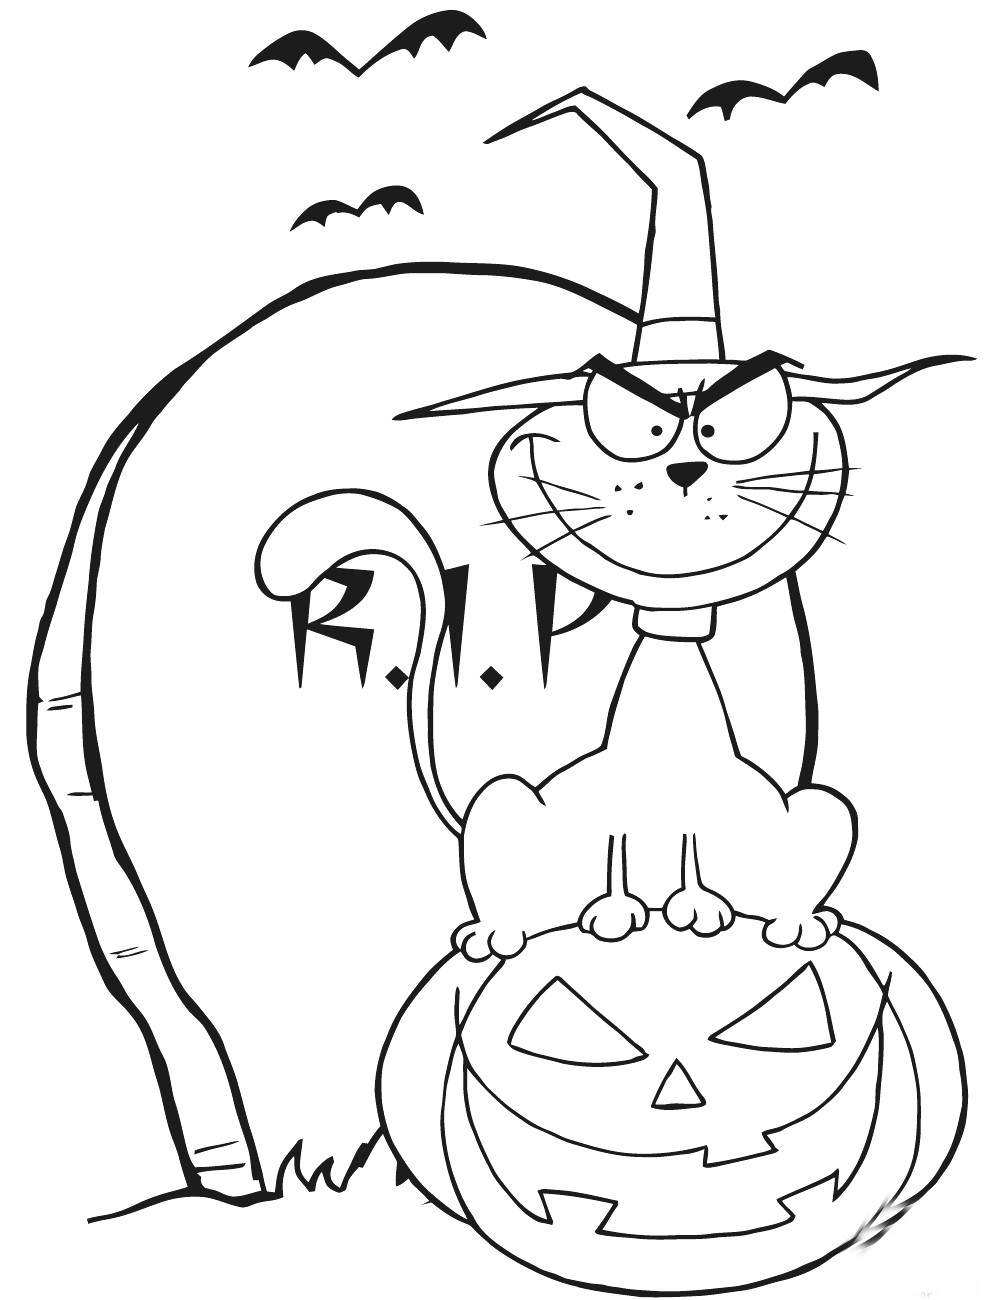 haloween coloring pages free halloween coloring pages for kids or for the kid in haloween coloring pages